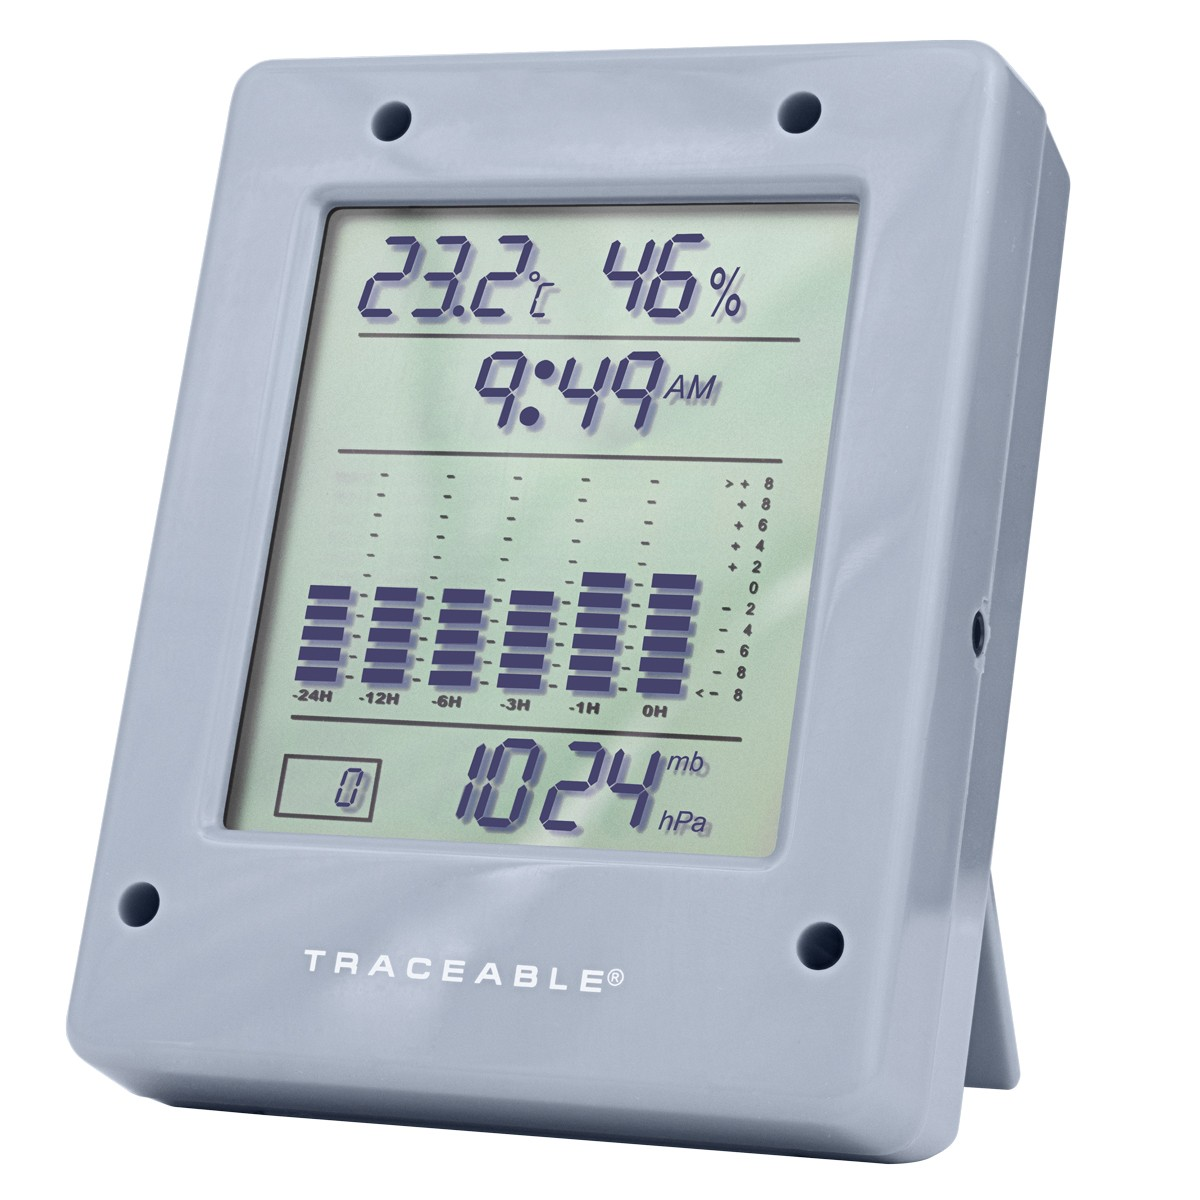 Digital Monitoring Traceable Barometer